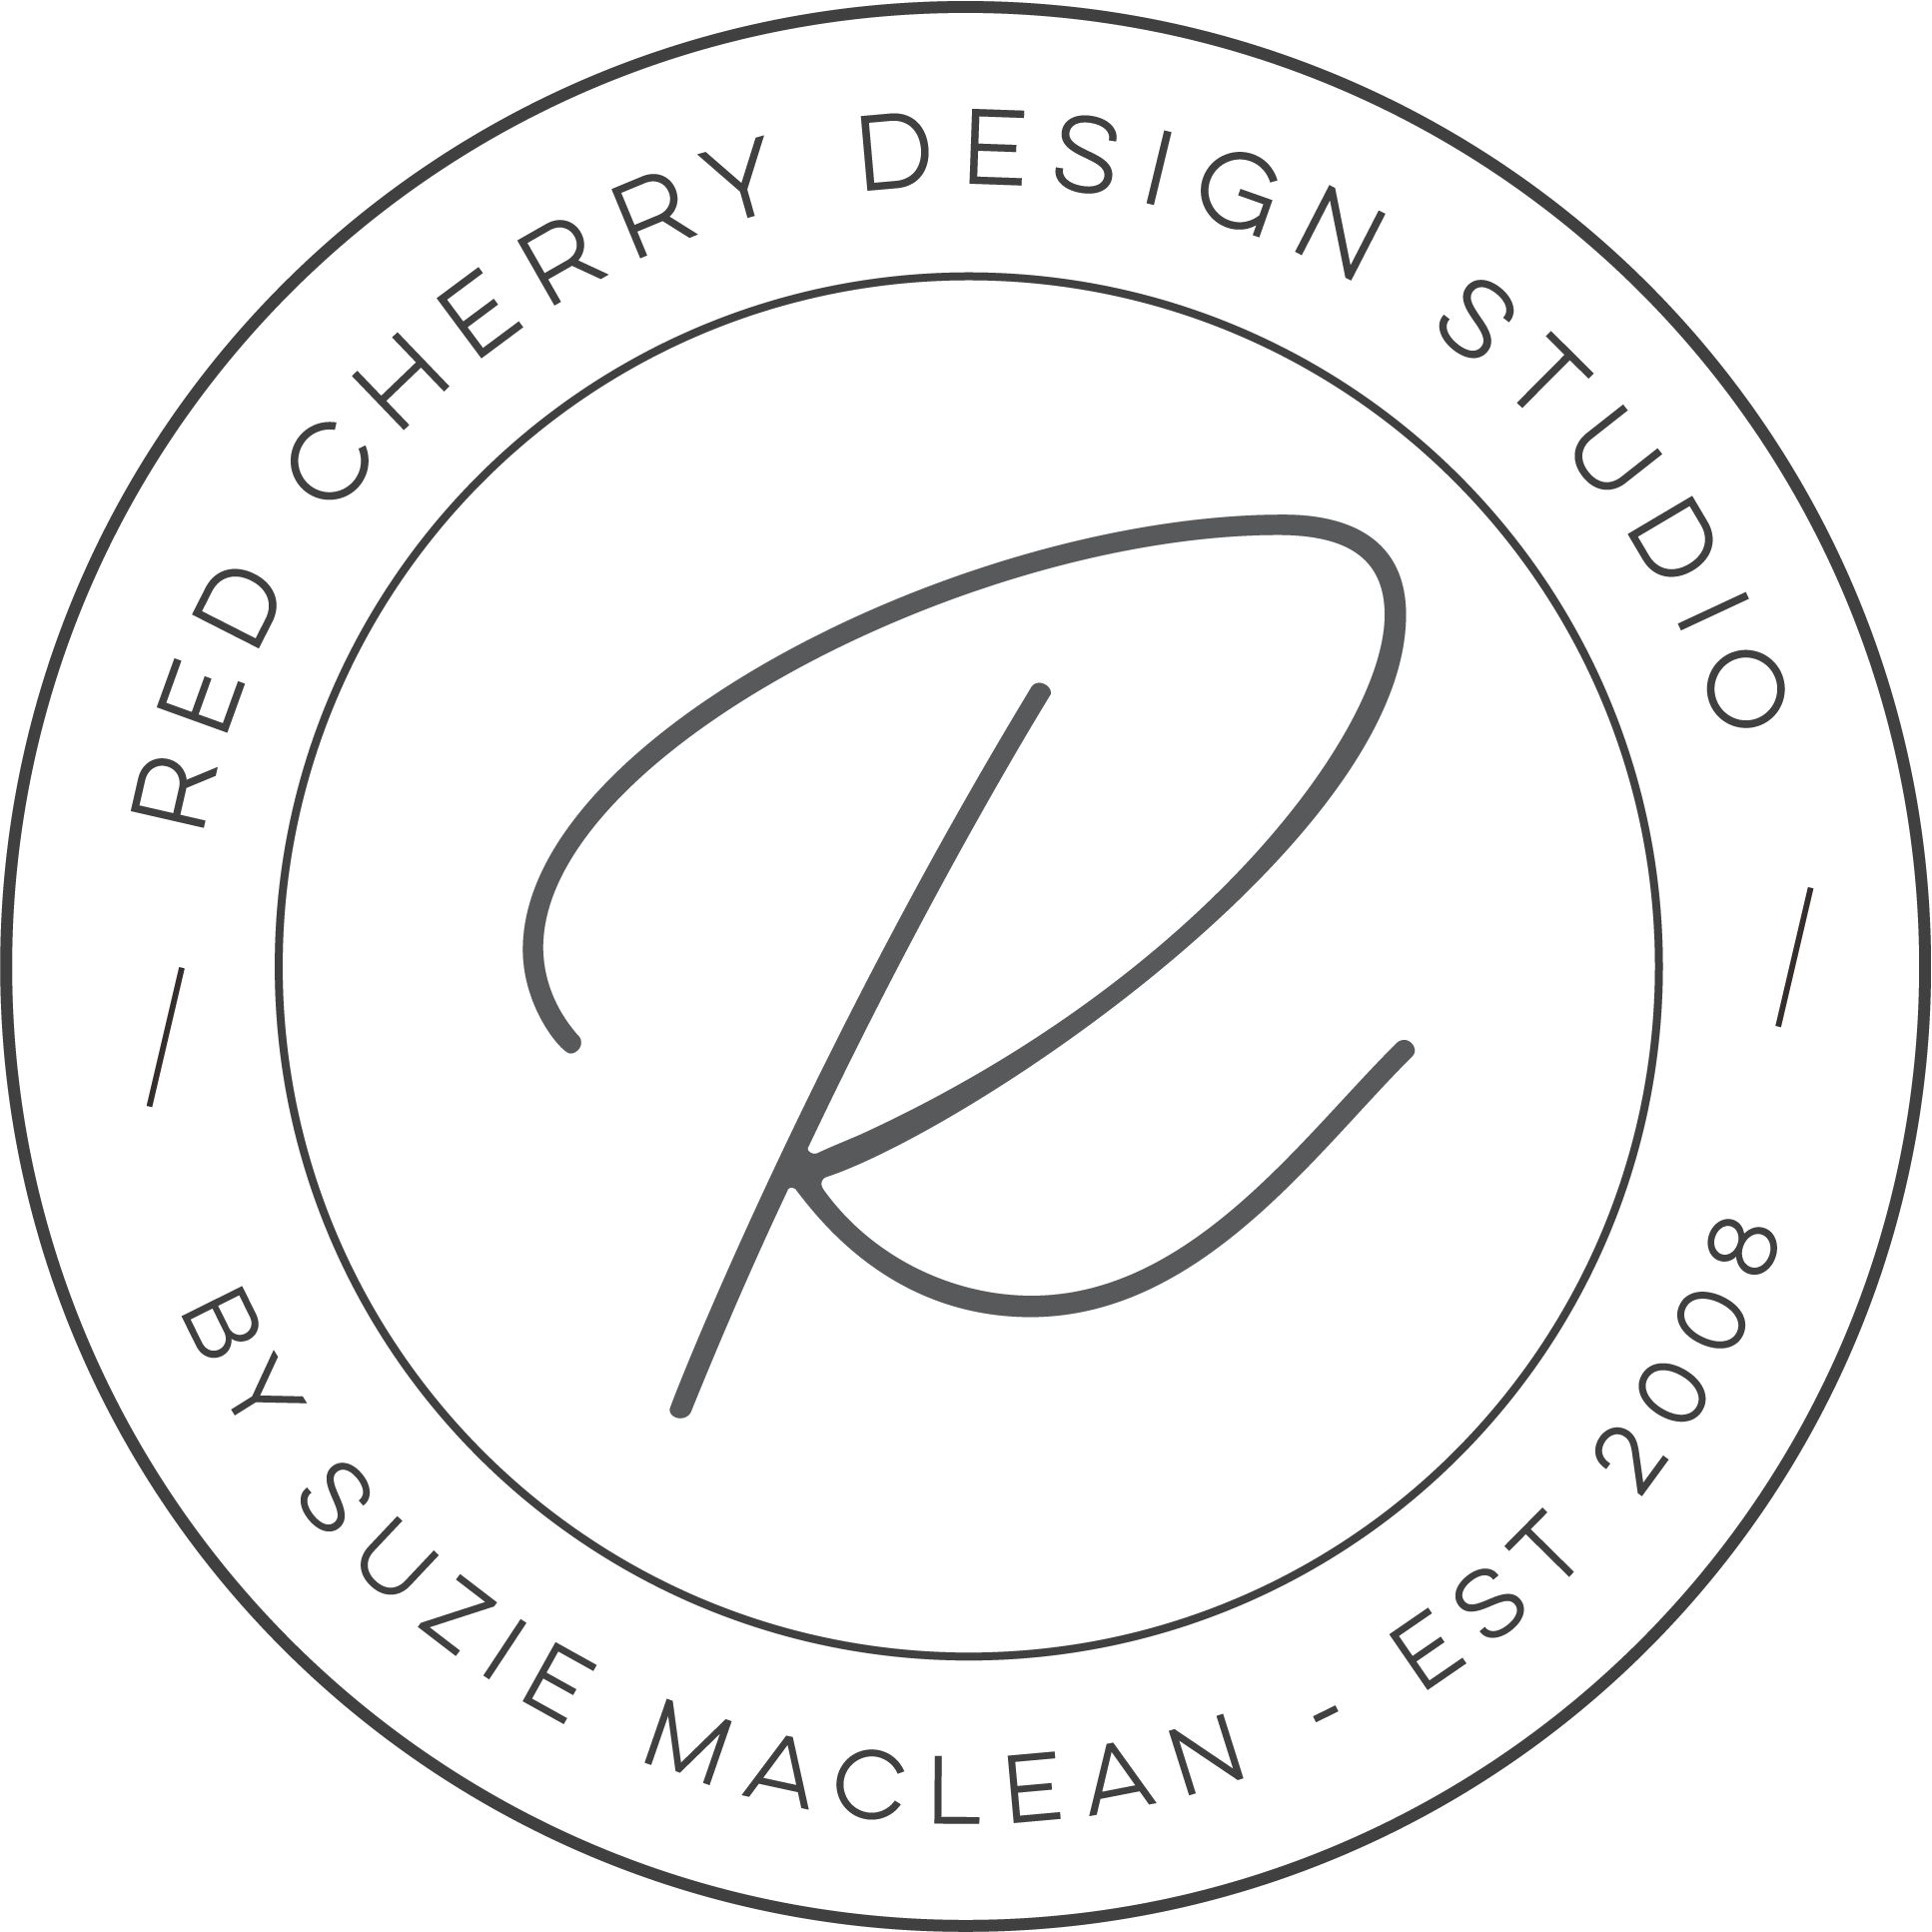 Red Cherry Design Studio